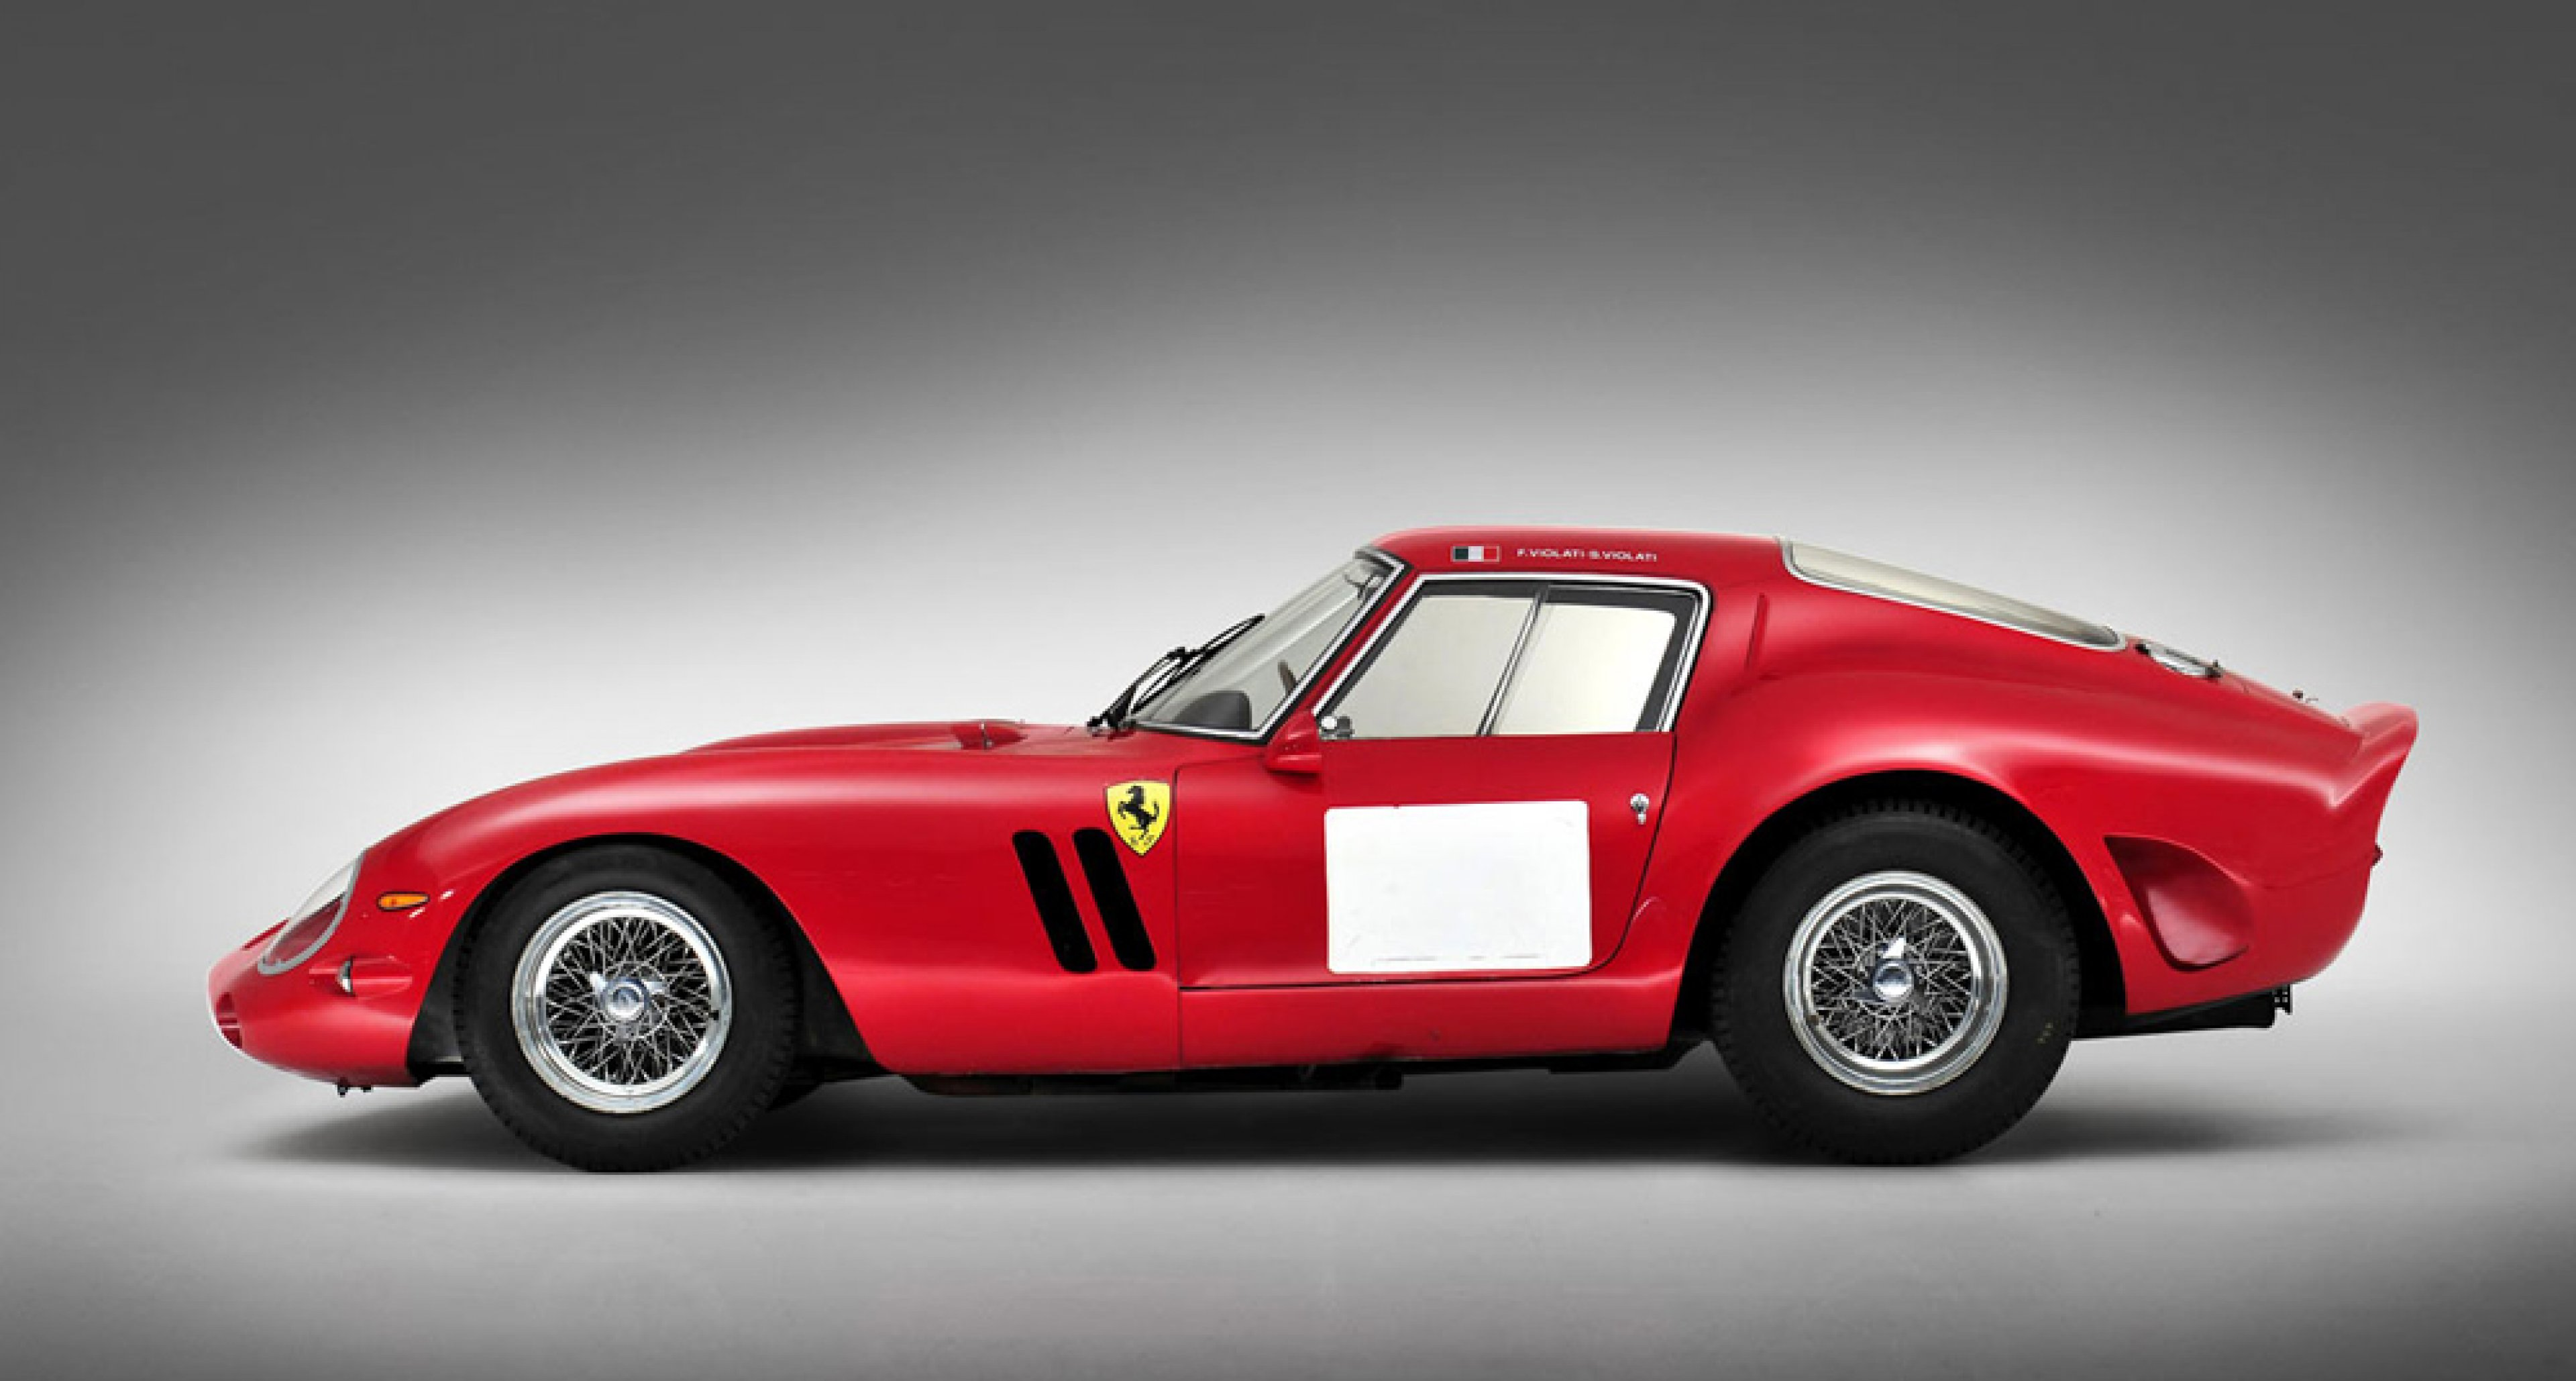 1962 Ferrari 250 GTO, sold by Bonhams in August 2014 for $ 38,115,000.